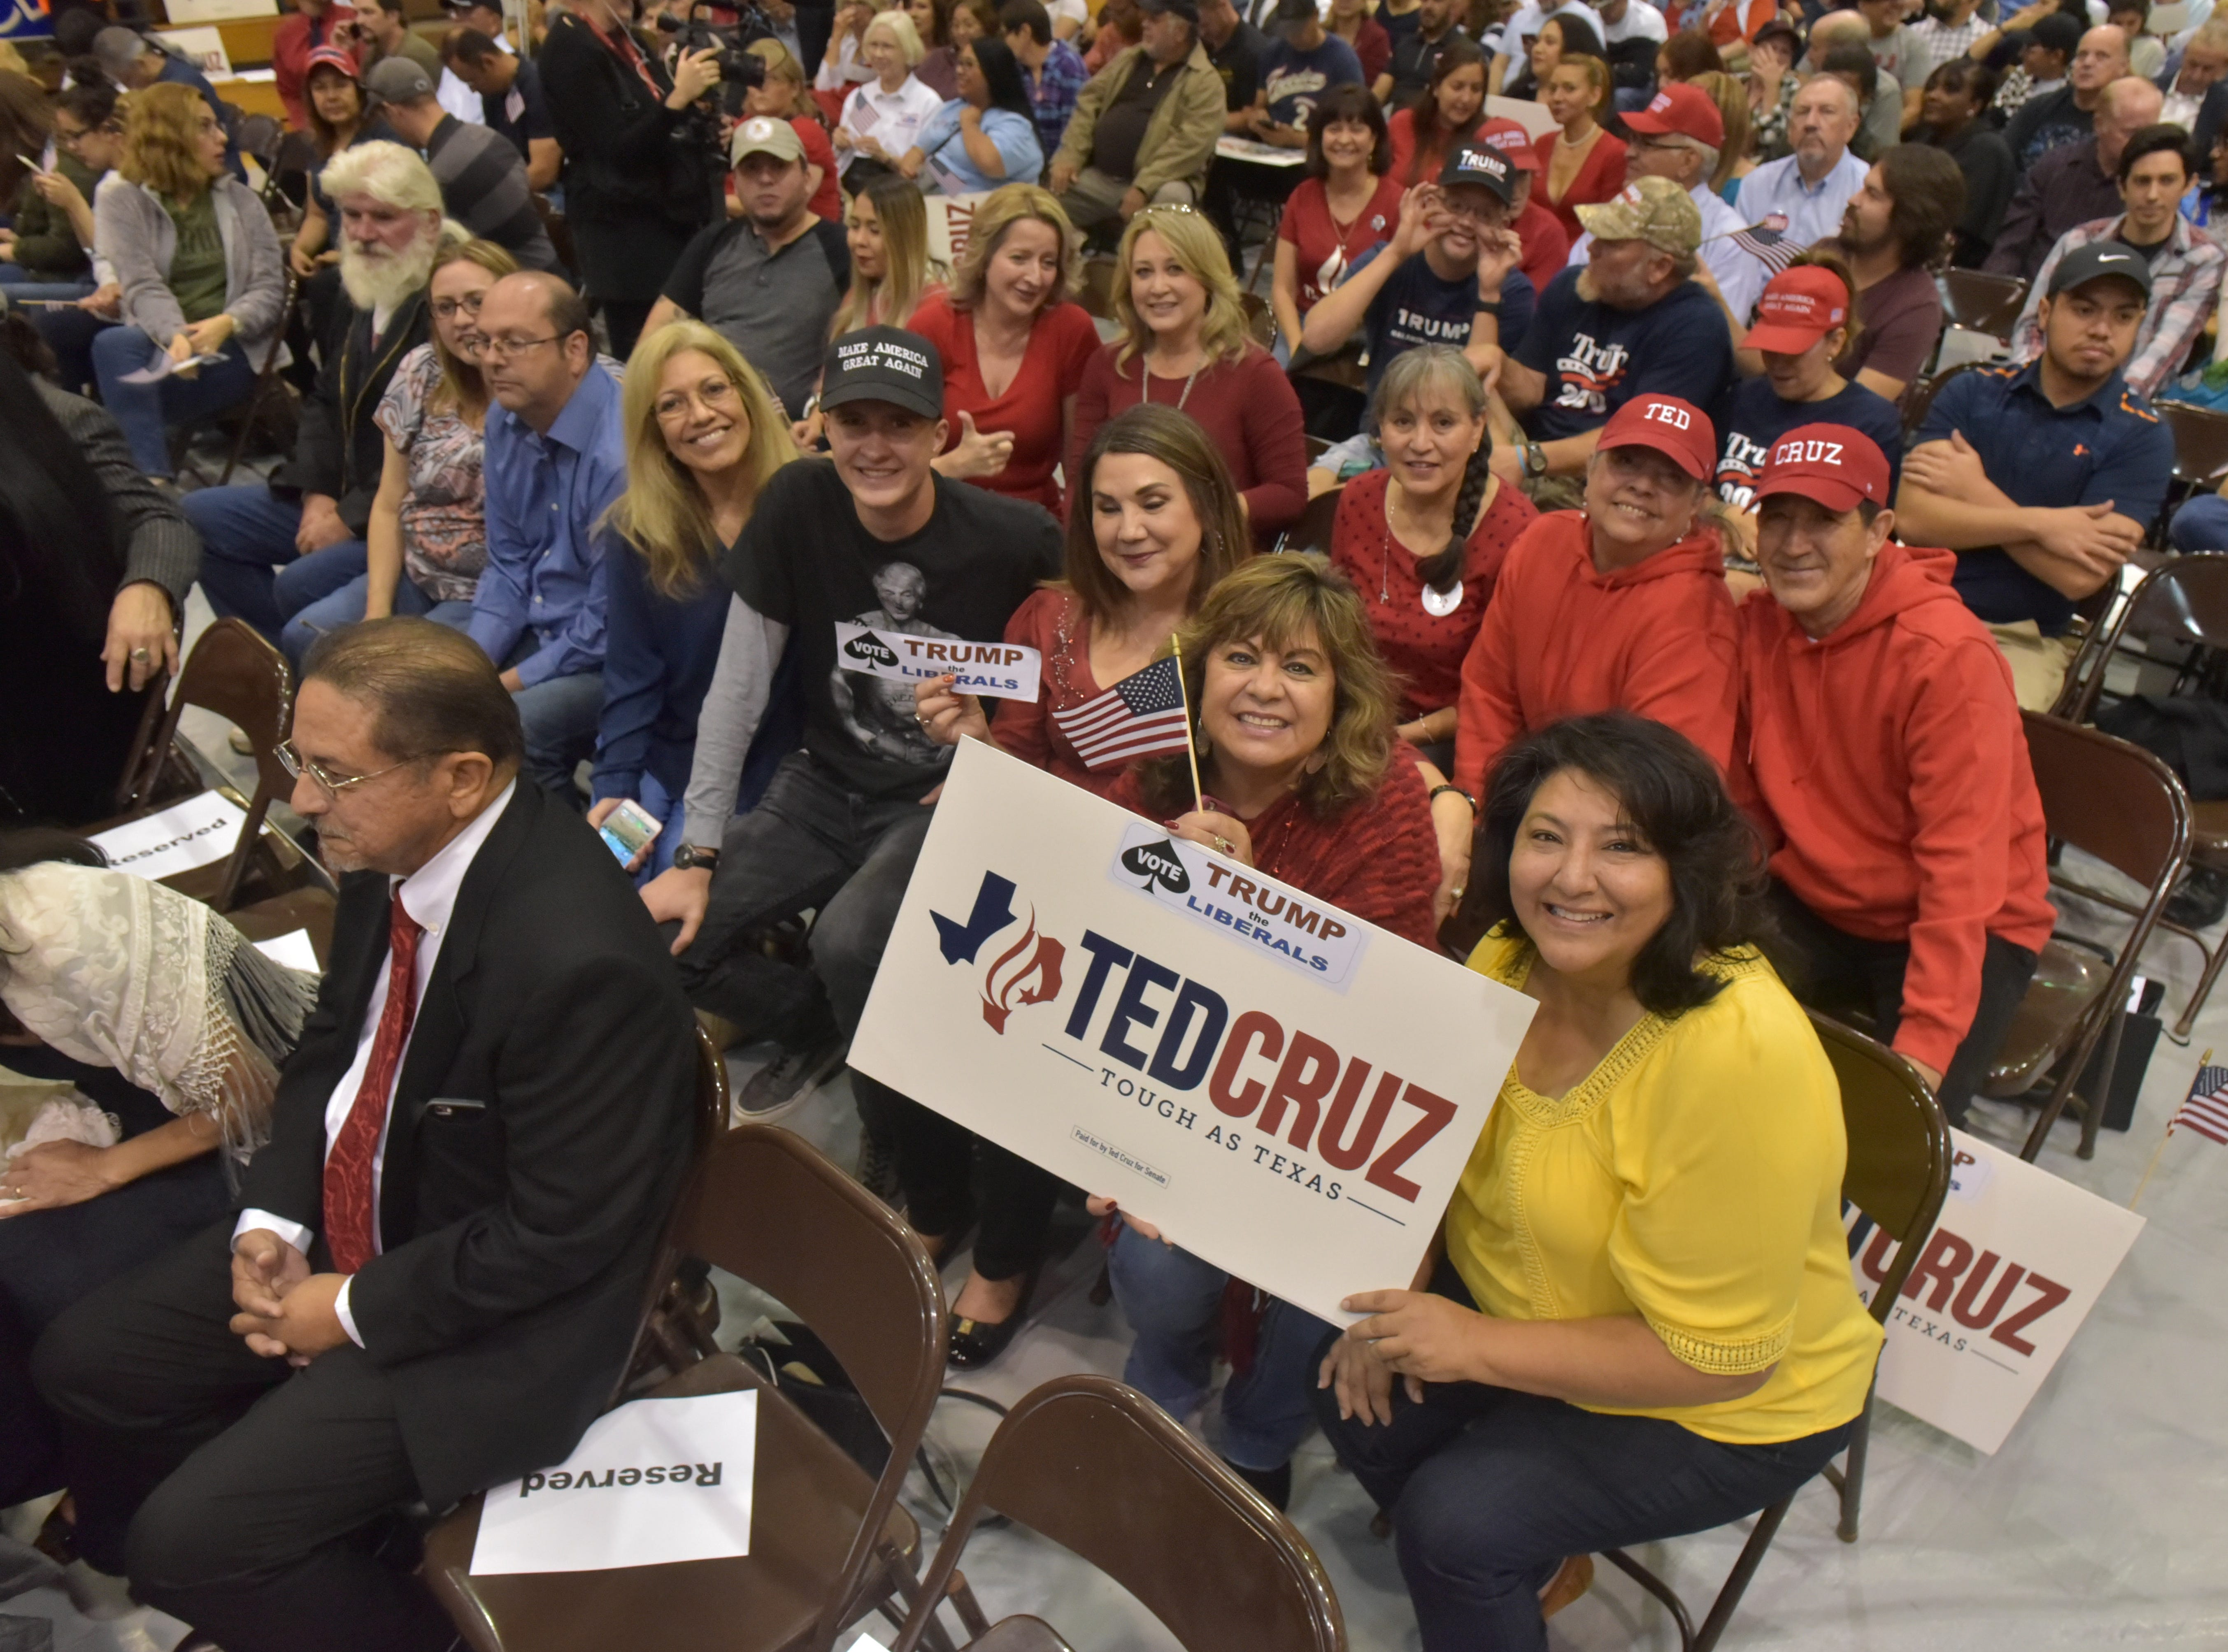 Supporters of Texas Senator Ted Cruz wait for him to appear as he made a stop in El Paso Saturday night at Franklin High School on El Paso's westside.